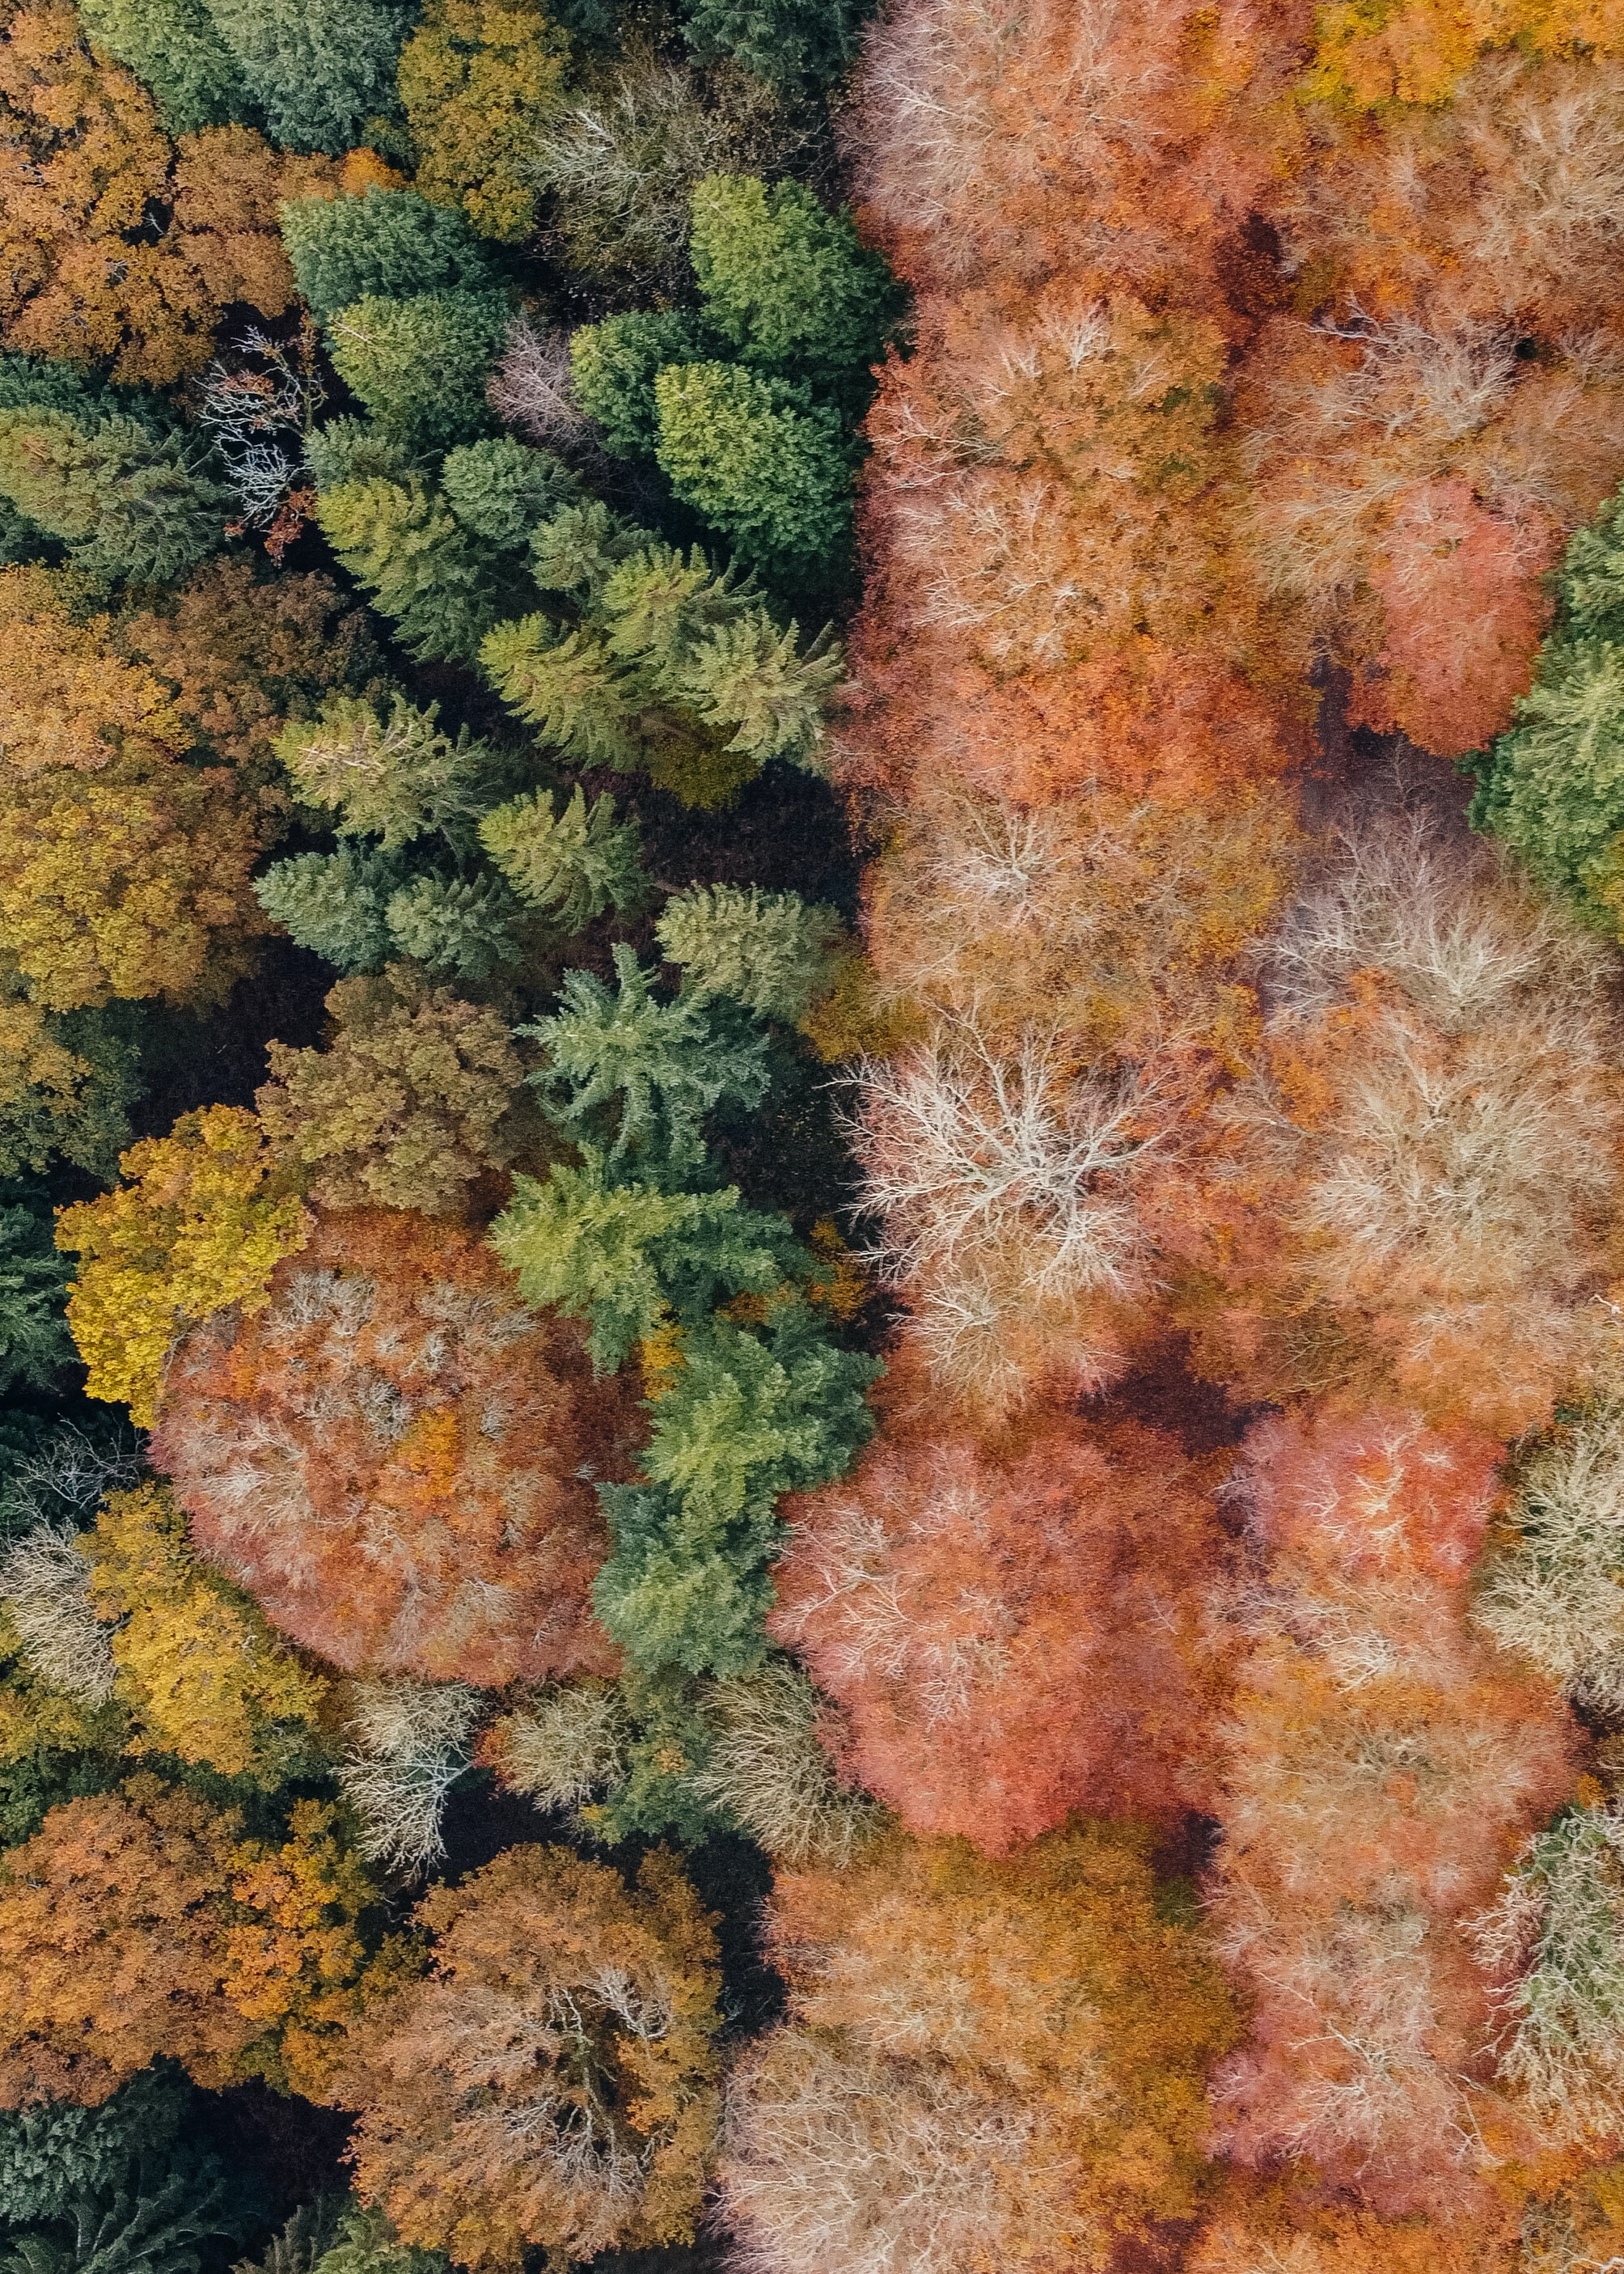 148815 download wallpaper Trees, View From Above, Forest, Autumn, Nature screensavers and pictures for free